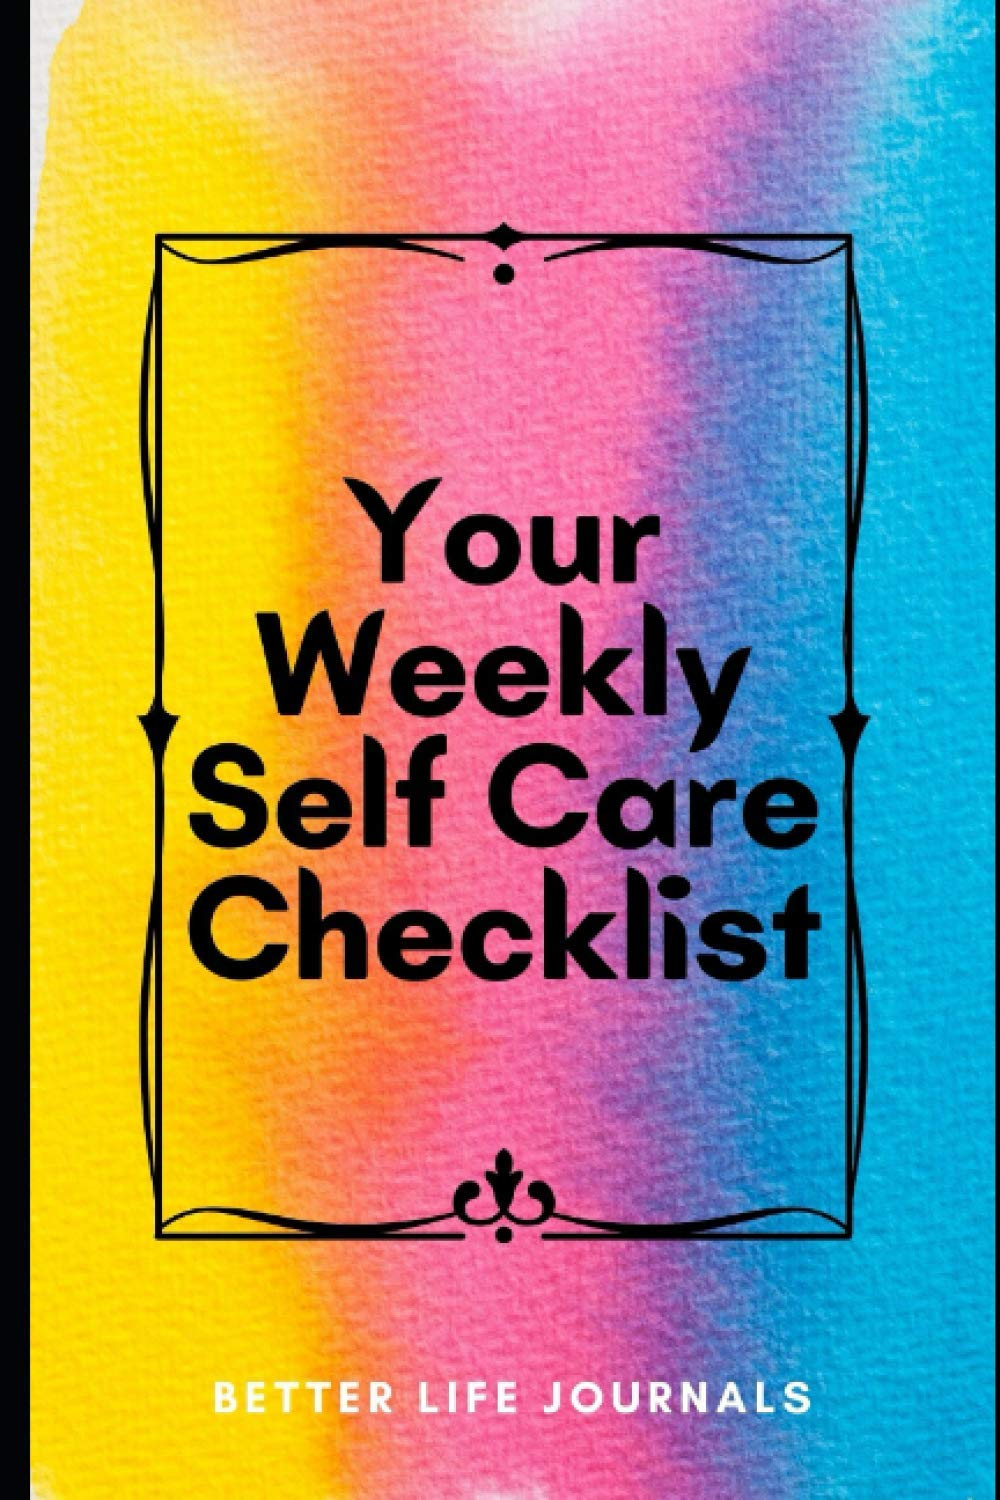 Your Weekly Self Care Checklist: Your 52 Week Weekly Self Care Workbook, Planner and Journal to Help You Take Care of Yourself Better Better Life Journals